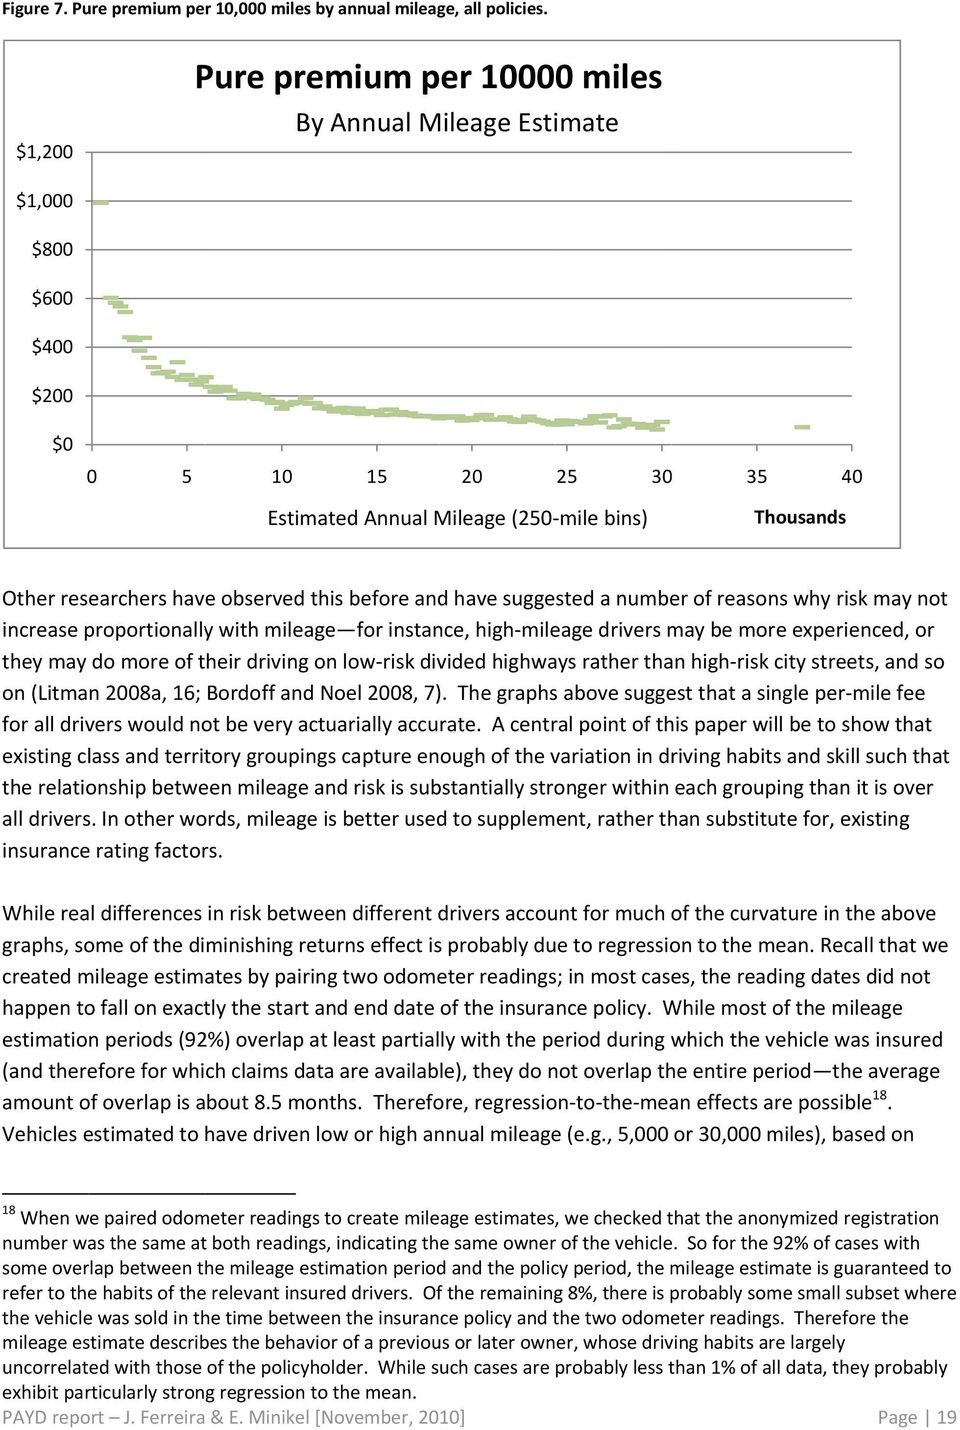 observed this before and have suggested a number of reasons why risk may not increase proportionally with mileage for instance, high mileage drivers may be more experienced, or they may do more of